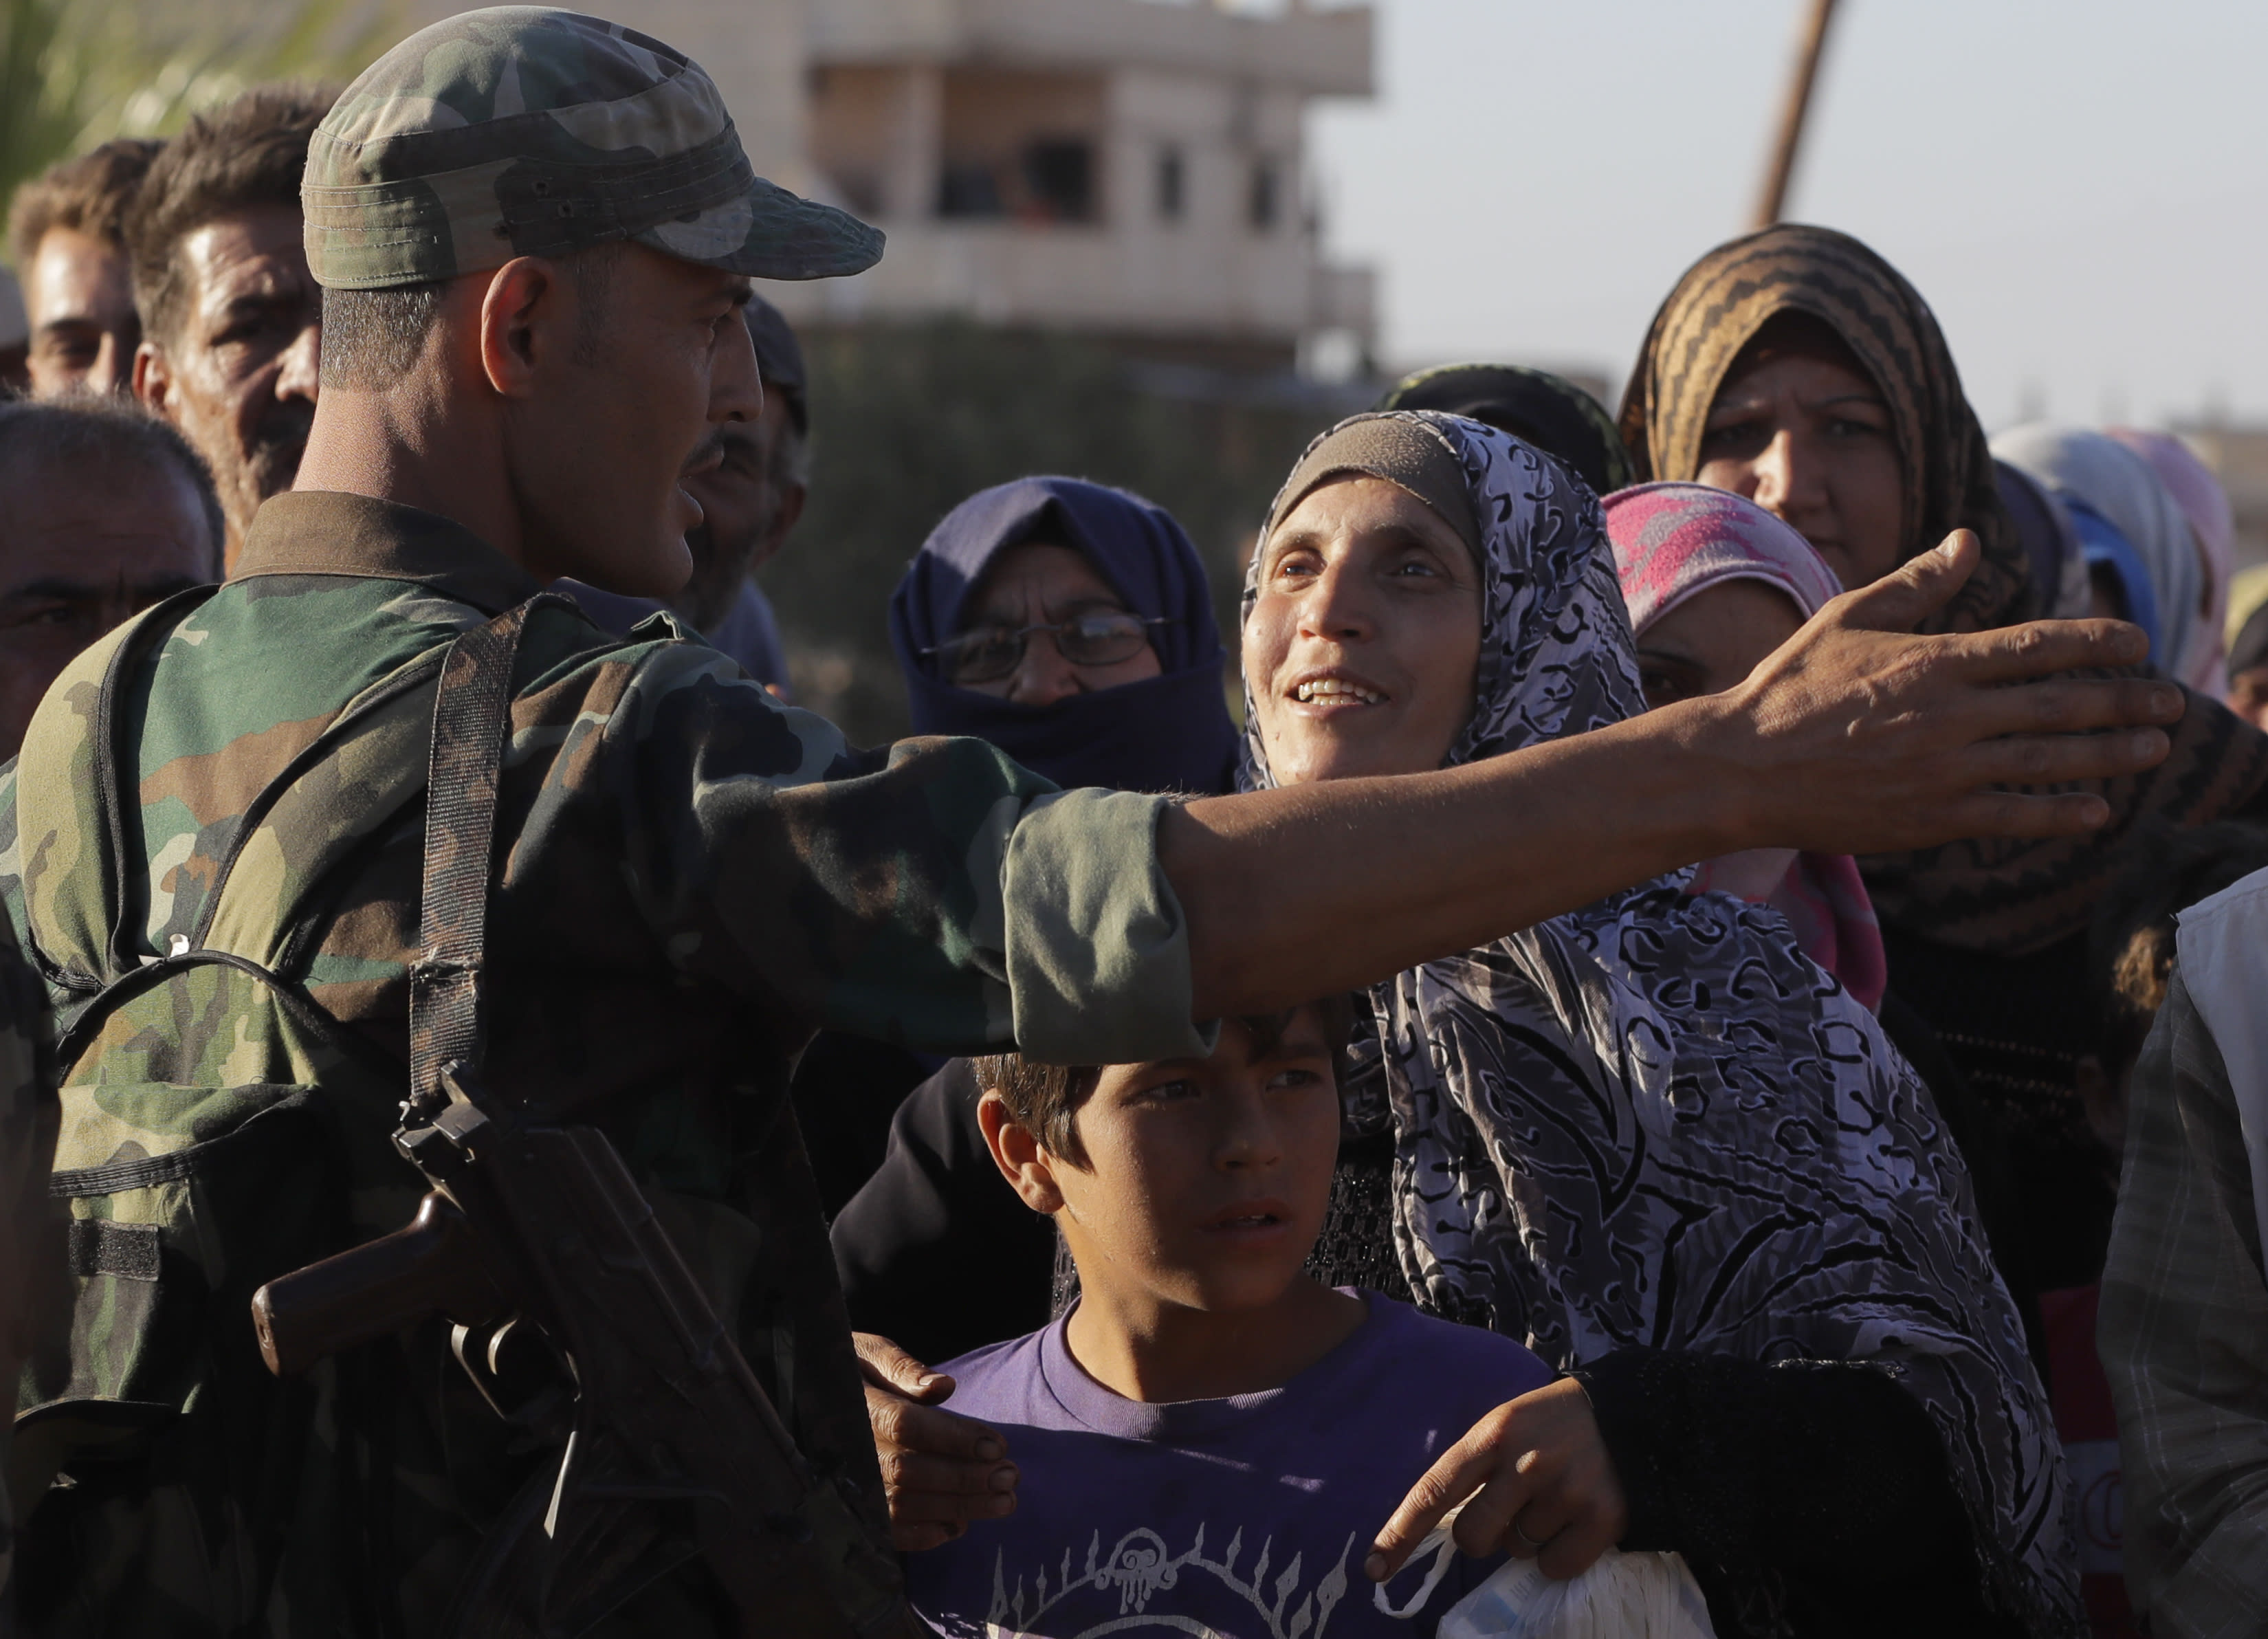 FILE - In this Aug. 15, 2018 file photo, a woman talks with a soldier of the Syrian army during distribution of humanitarian aid from the Russian military in the town of Rastan, Syria. Over the last two days, members of the UN Security Council have been haggling over cross-border aid delivery to Syria, with Russia, a major ally of the Syria government, working to reduce the delivery of U.N. humanitarian aid to Syria's last rebel-held northwest down from two crossings to just one. A final vote is expected Friday, July 10, 2020 as western countries push on a new resolution to keep the two crossings open for six months, instead of a year. (AP Photo/Sergei Grits, File)